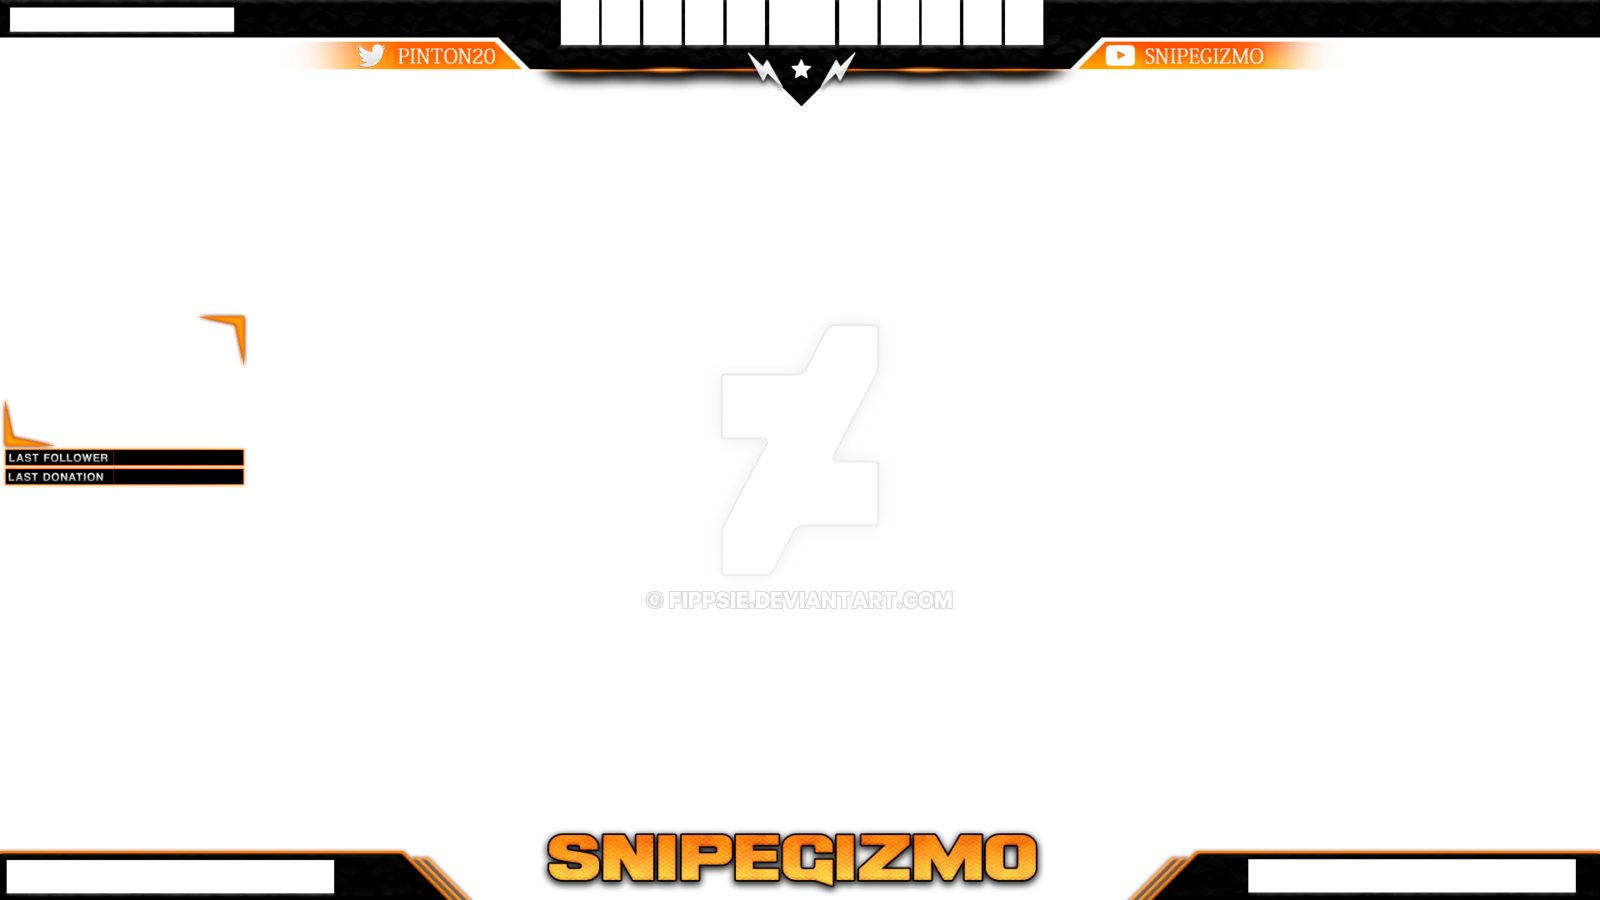 Twitch CSGO Stream Overlay For SnipeGizmo By Fippsie On